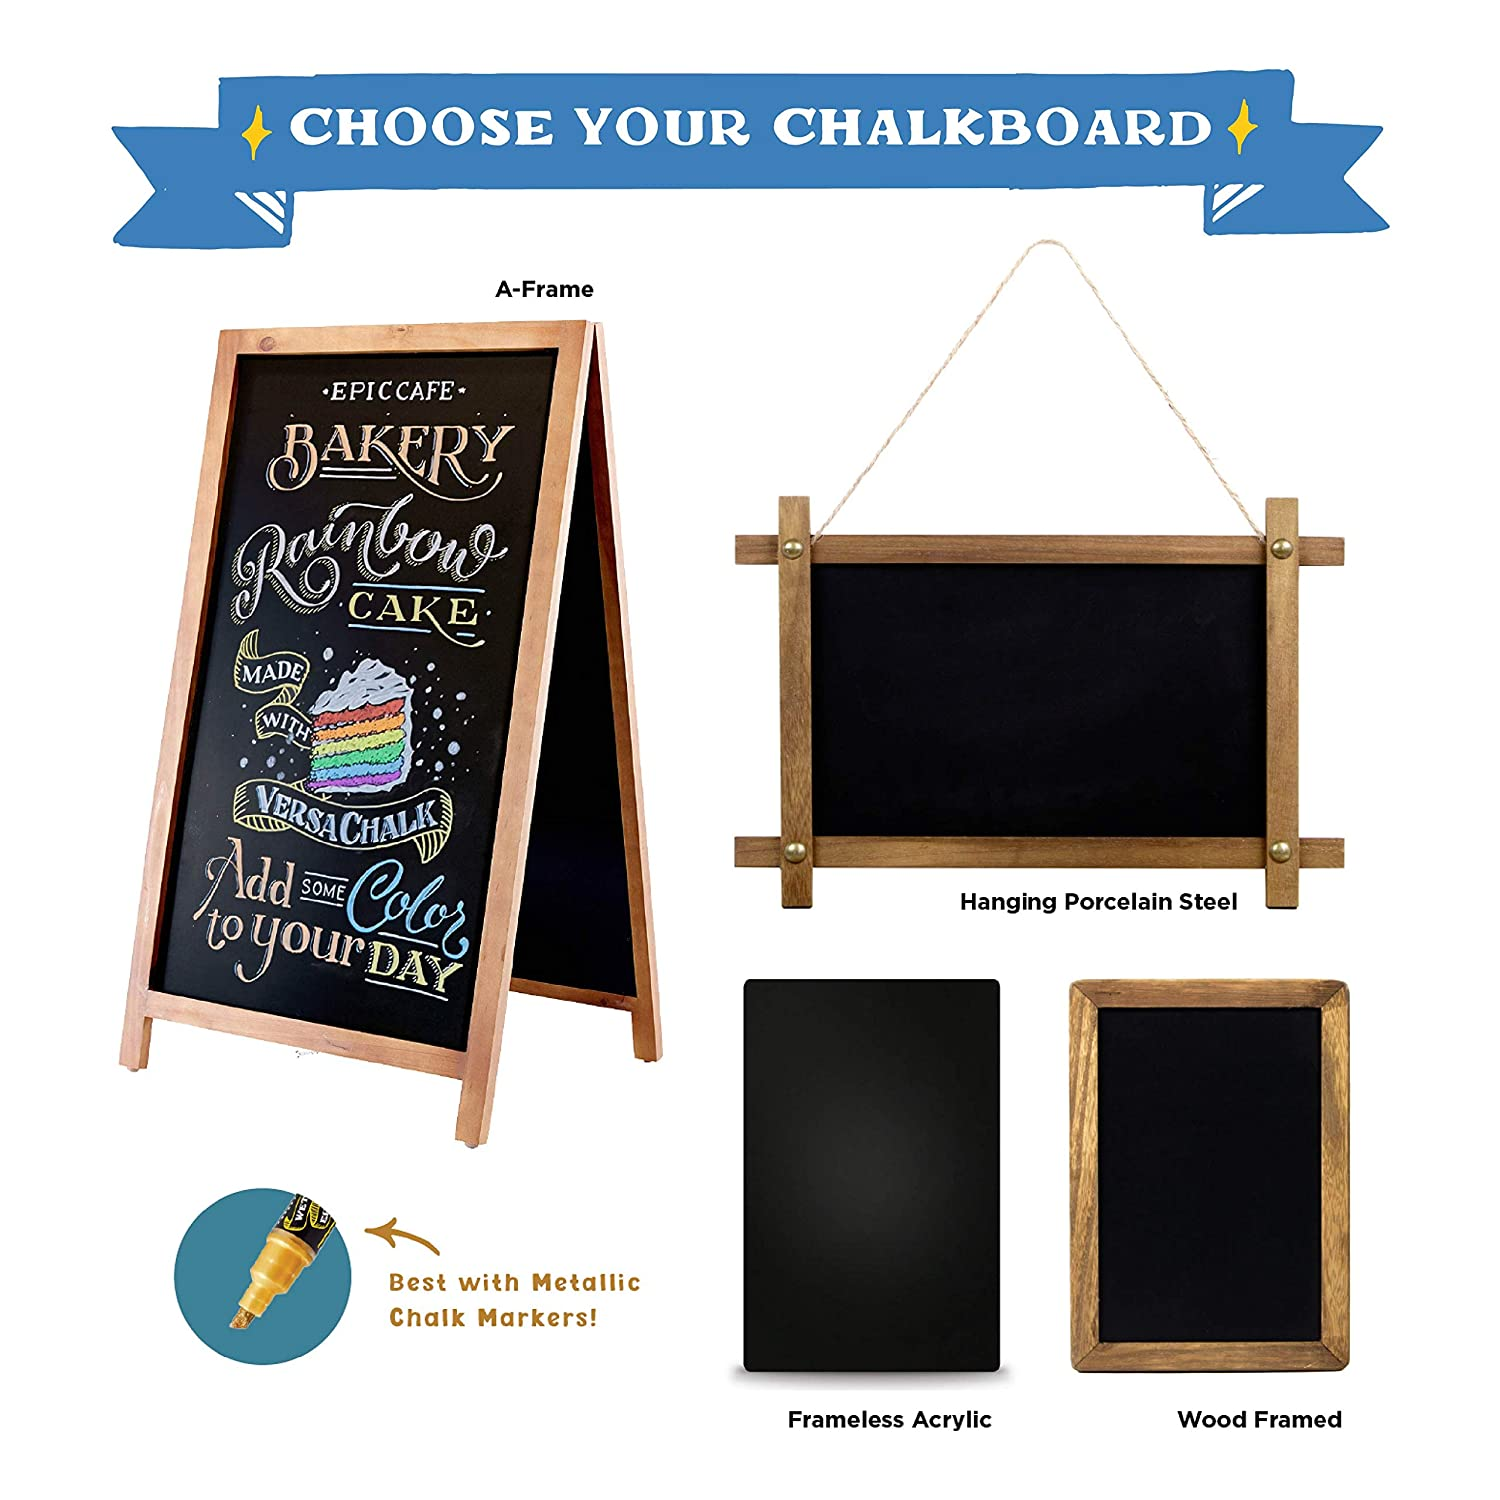 24 x 36 with Circular Clip Hangers Dual Purpose Magnetic Signboard Porcelain Steel Wall Mounted Magnetic Chalkboard Surface